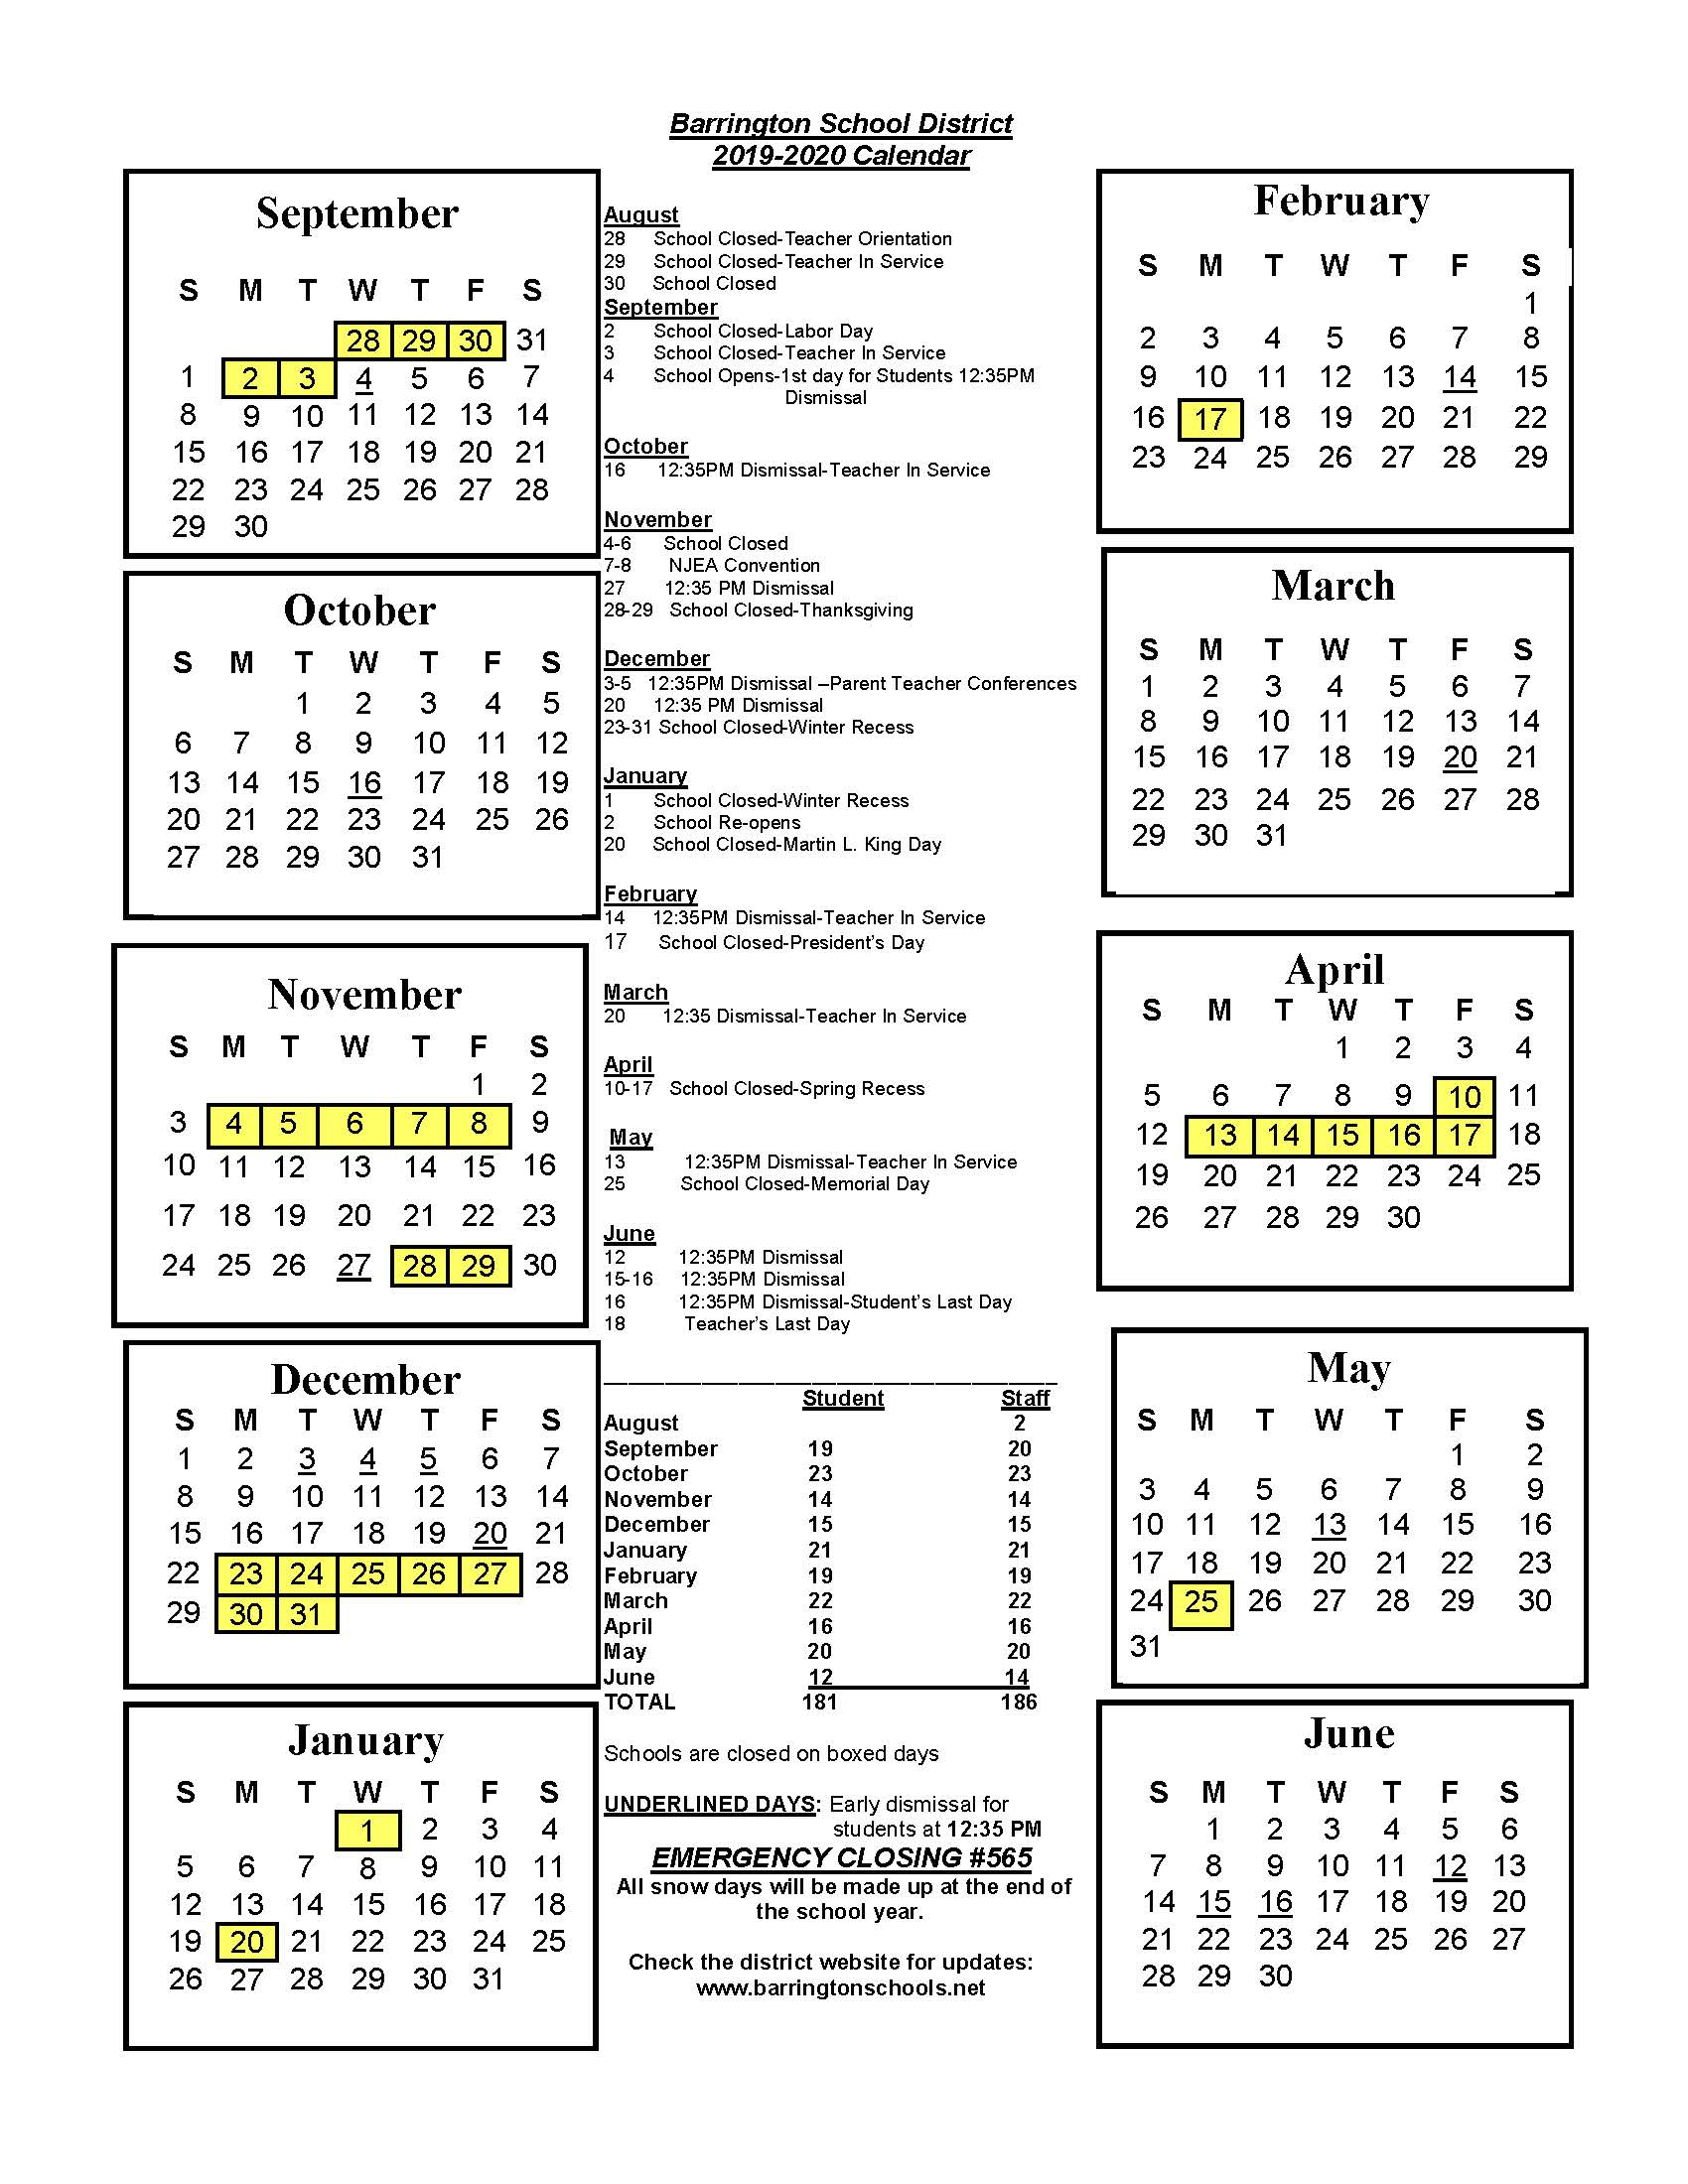 District Calendar - Barrington School District intended for Boyertown School Calander